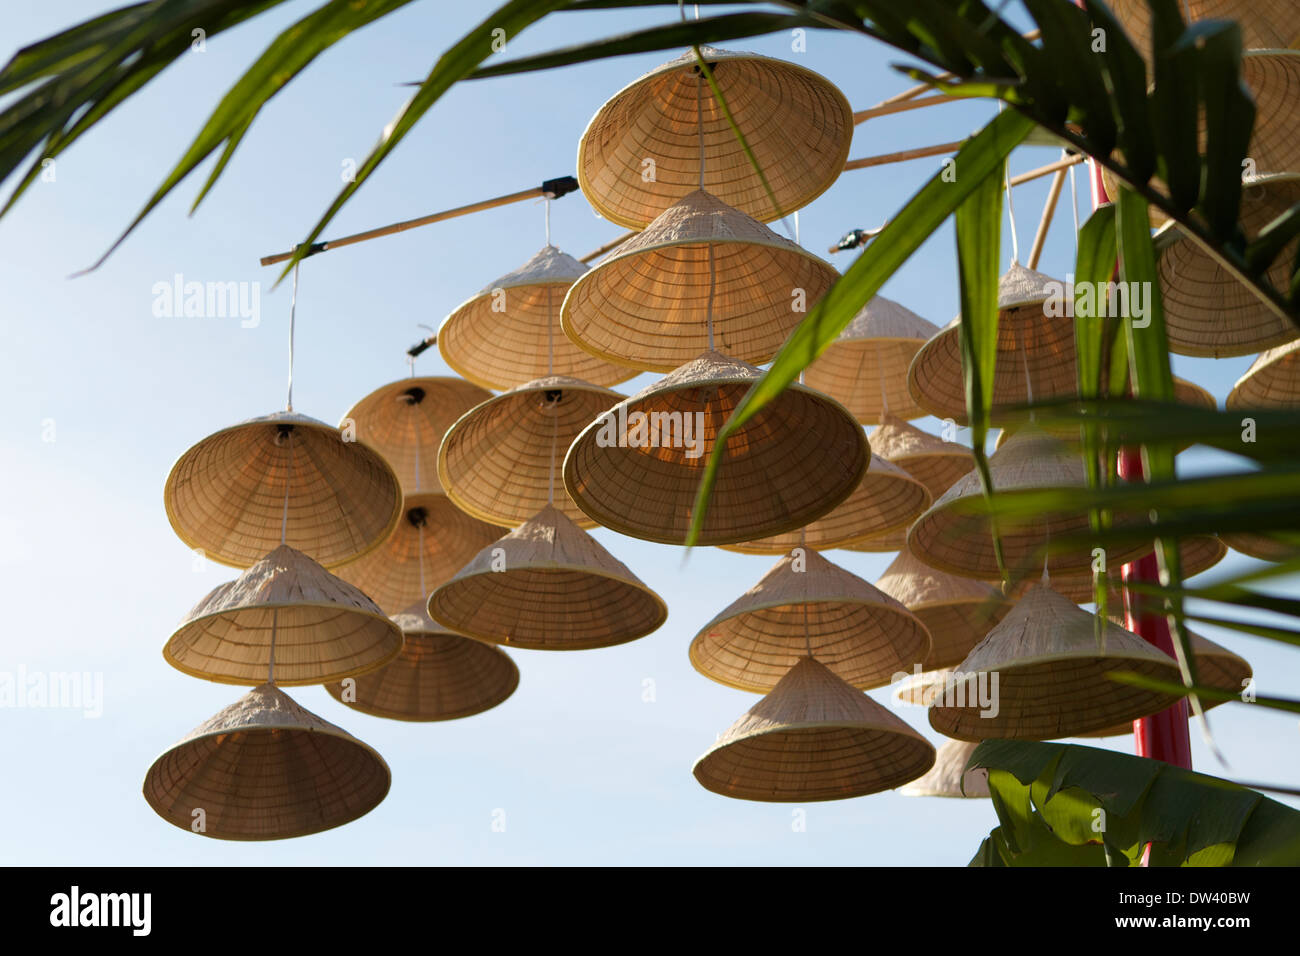 f9e1cf7f51d nón lá (Vietnamese or Chinese style) crafted conical hats originating in  East South Asia